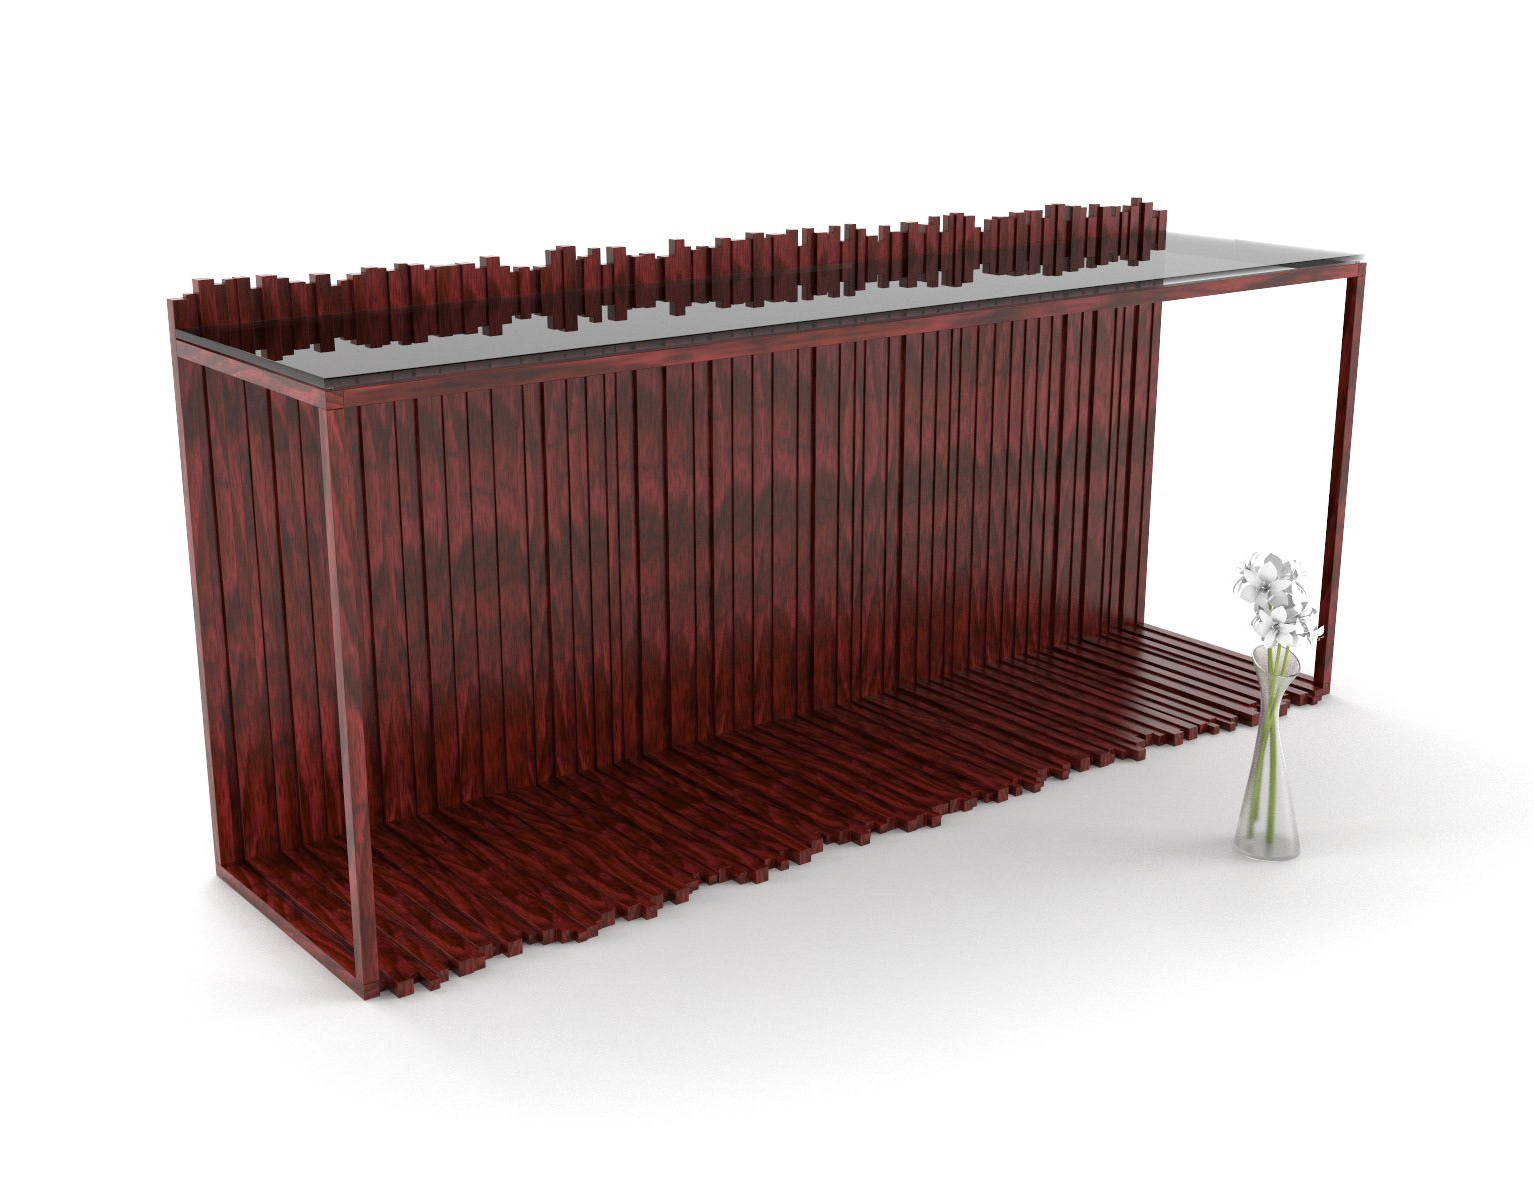 phillip collection furniture. Jagged Edge Collection Phillip Furniture O